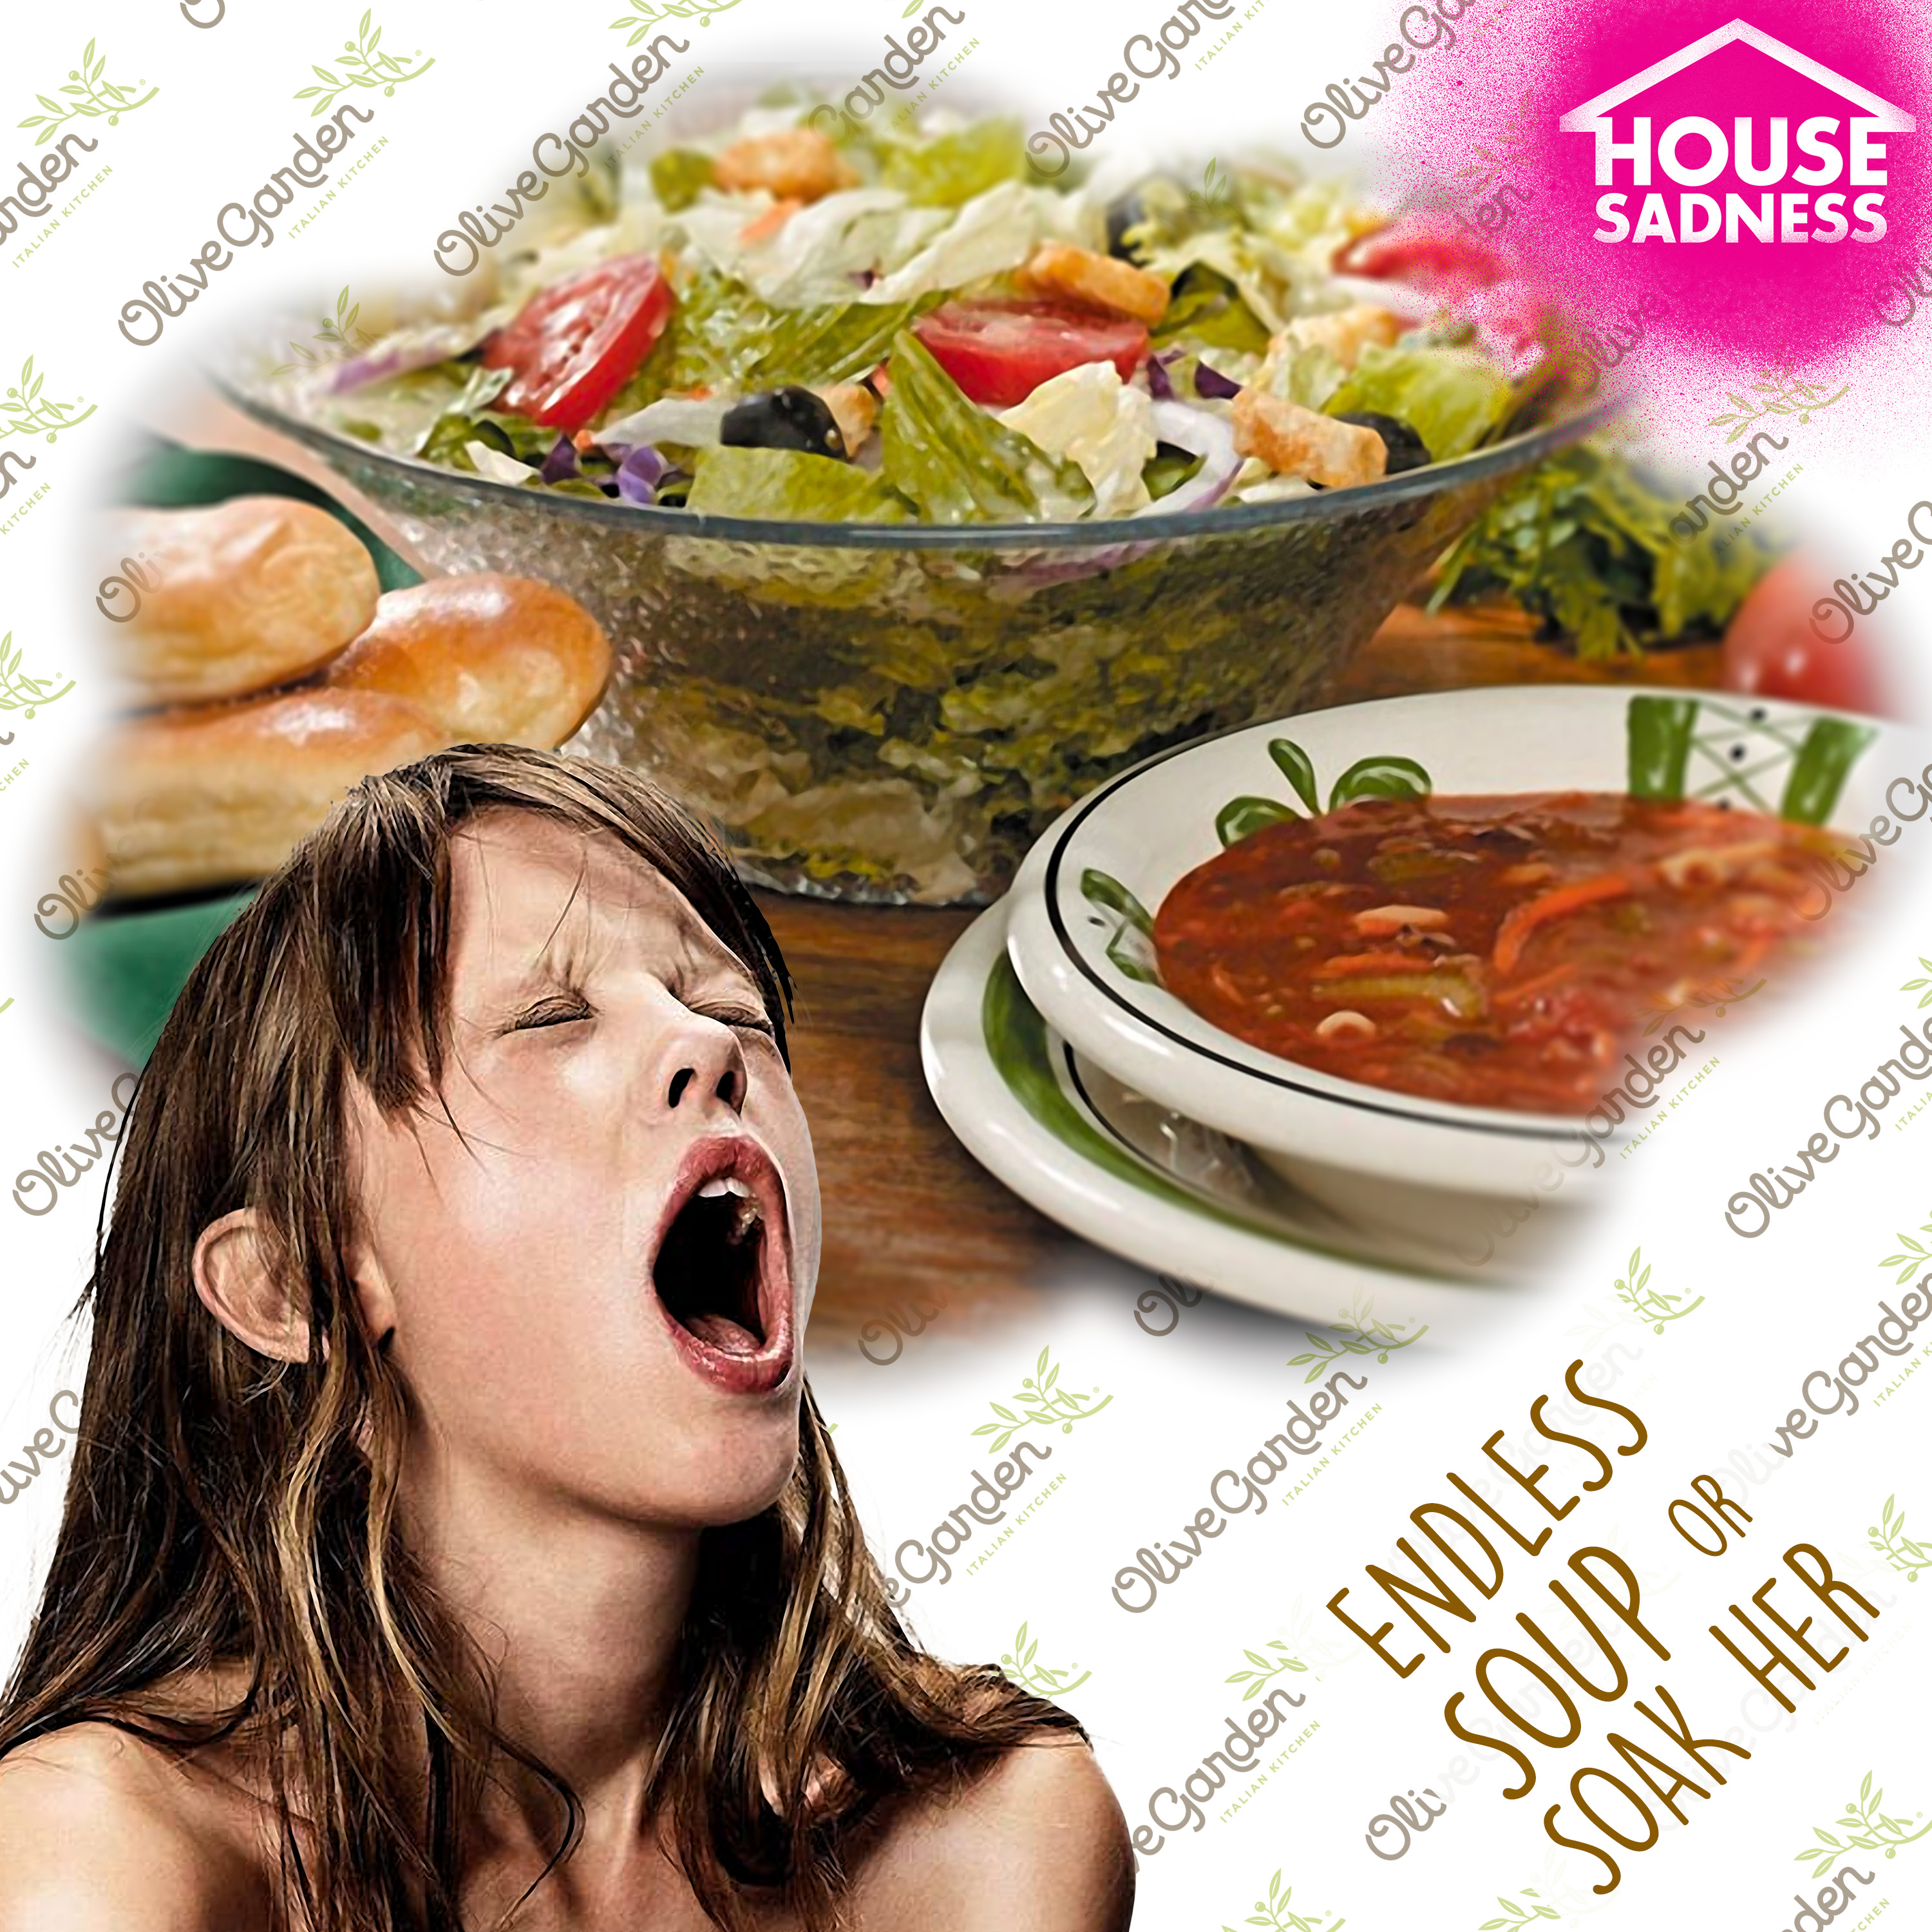 OLIVE GARDEN\'S ENDLESS SOUP OR SOAK-HER – House Sadness